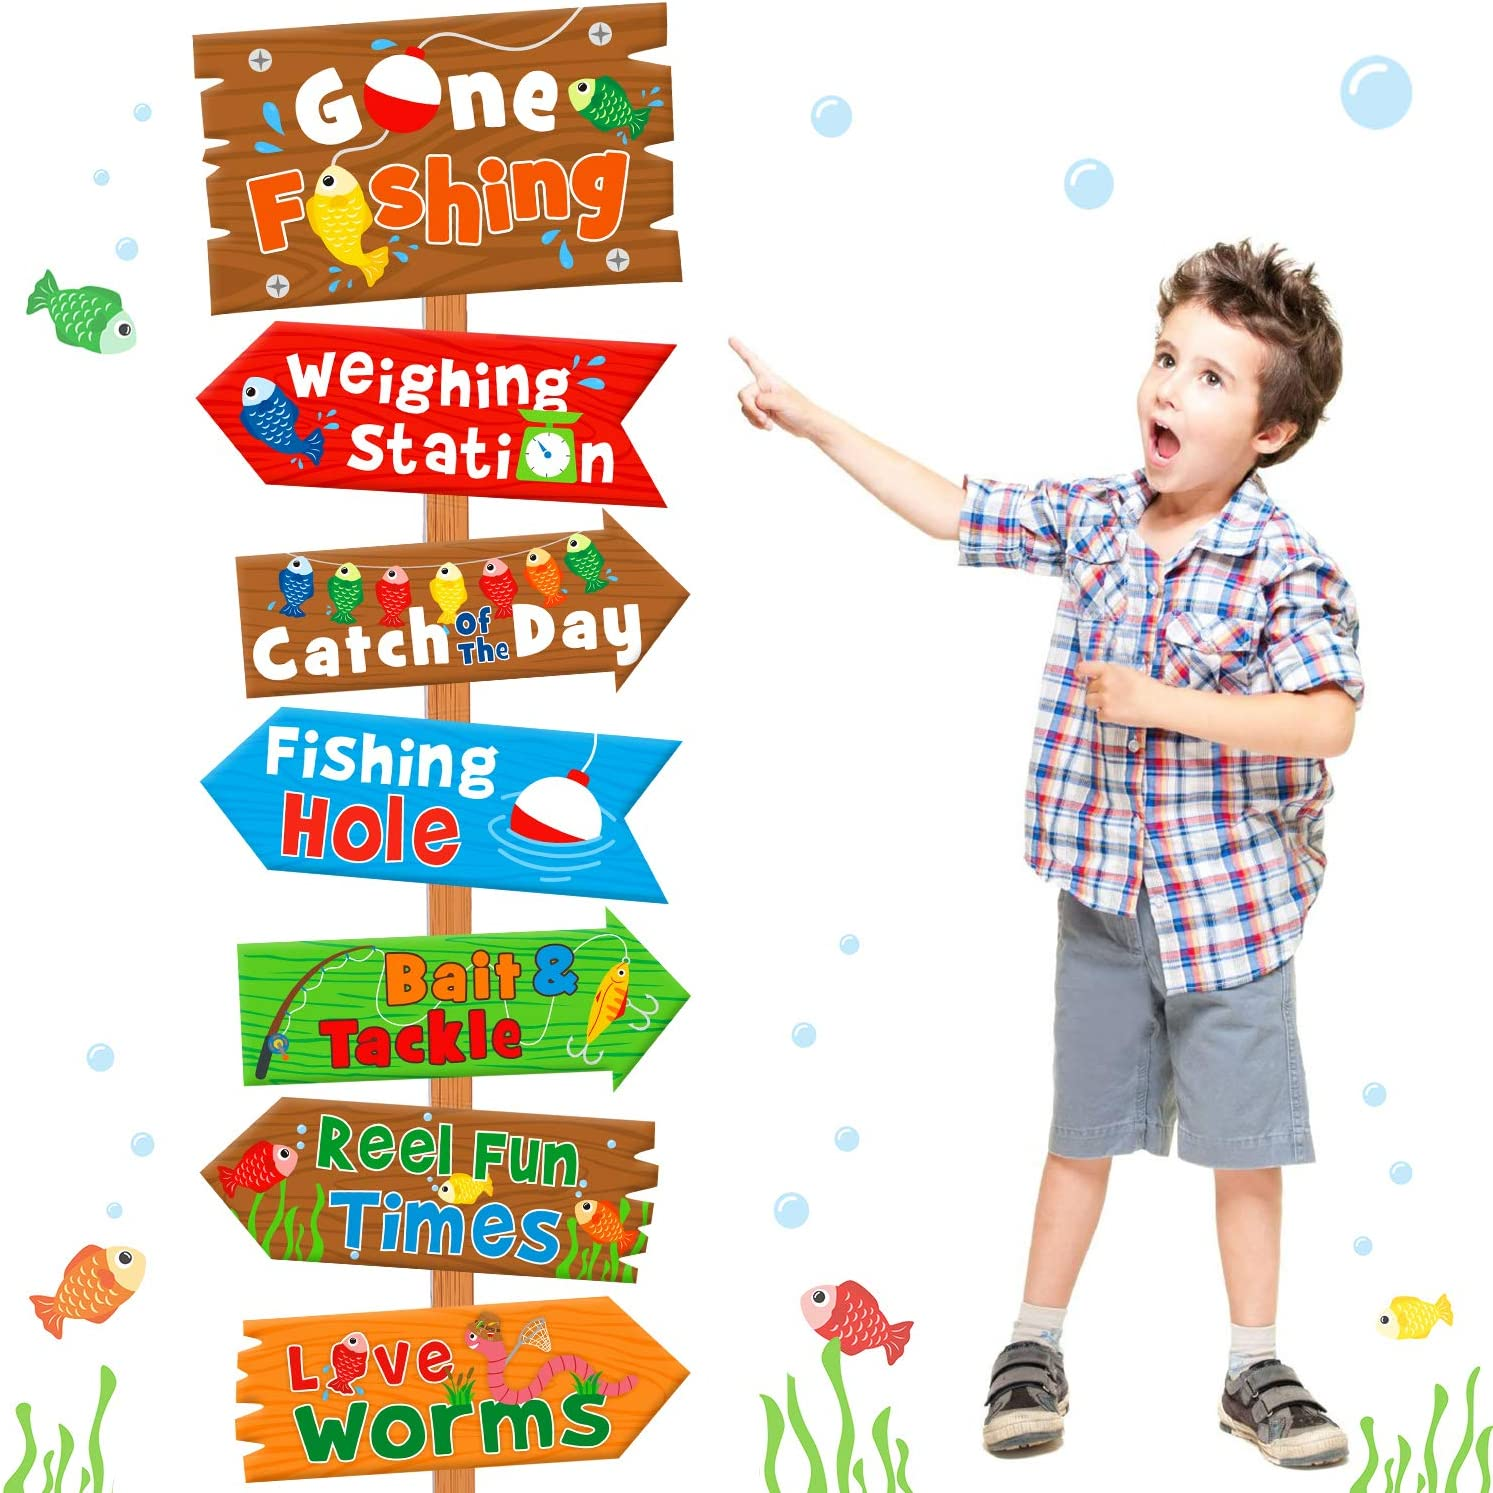 Huray Rayho Gone Fishing Party Directional Welcome Signs The Big One Backyard Door Cutouts Summer Birthday Party Favor Ideas Decoration Supplies